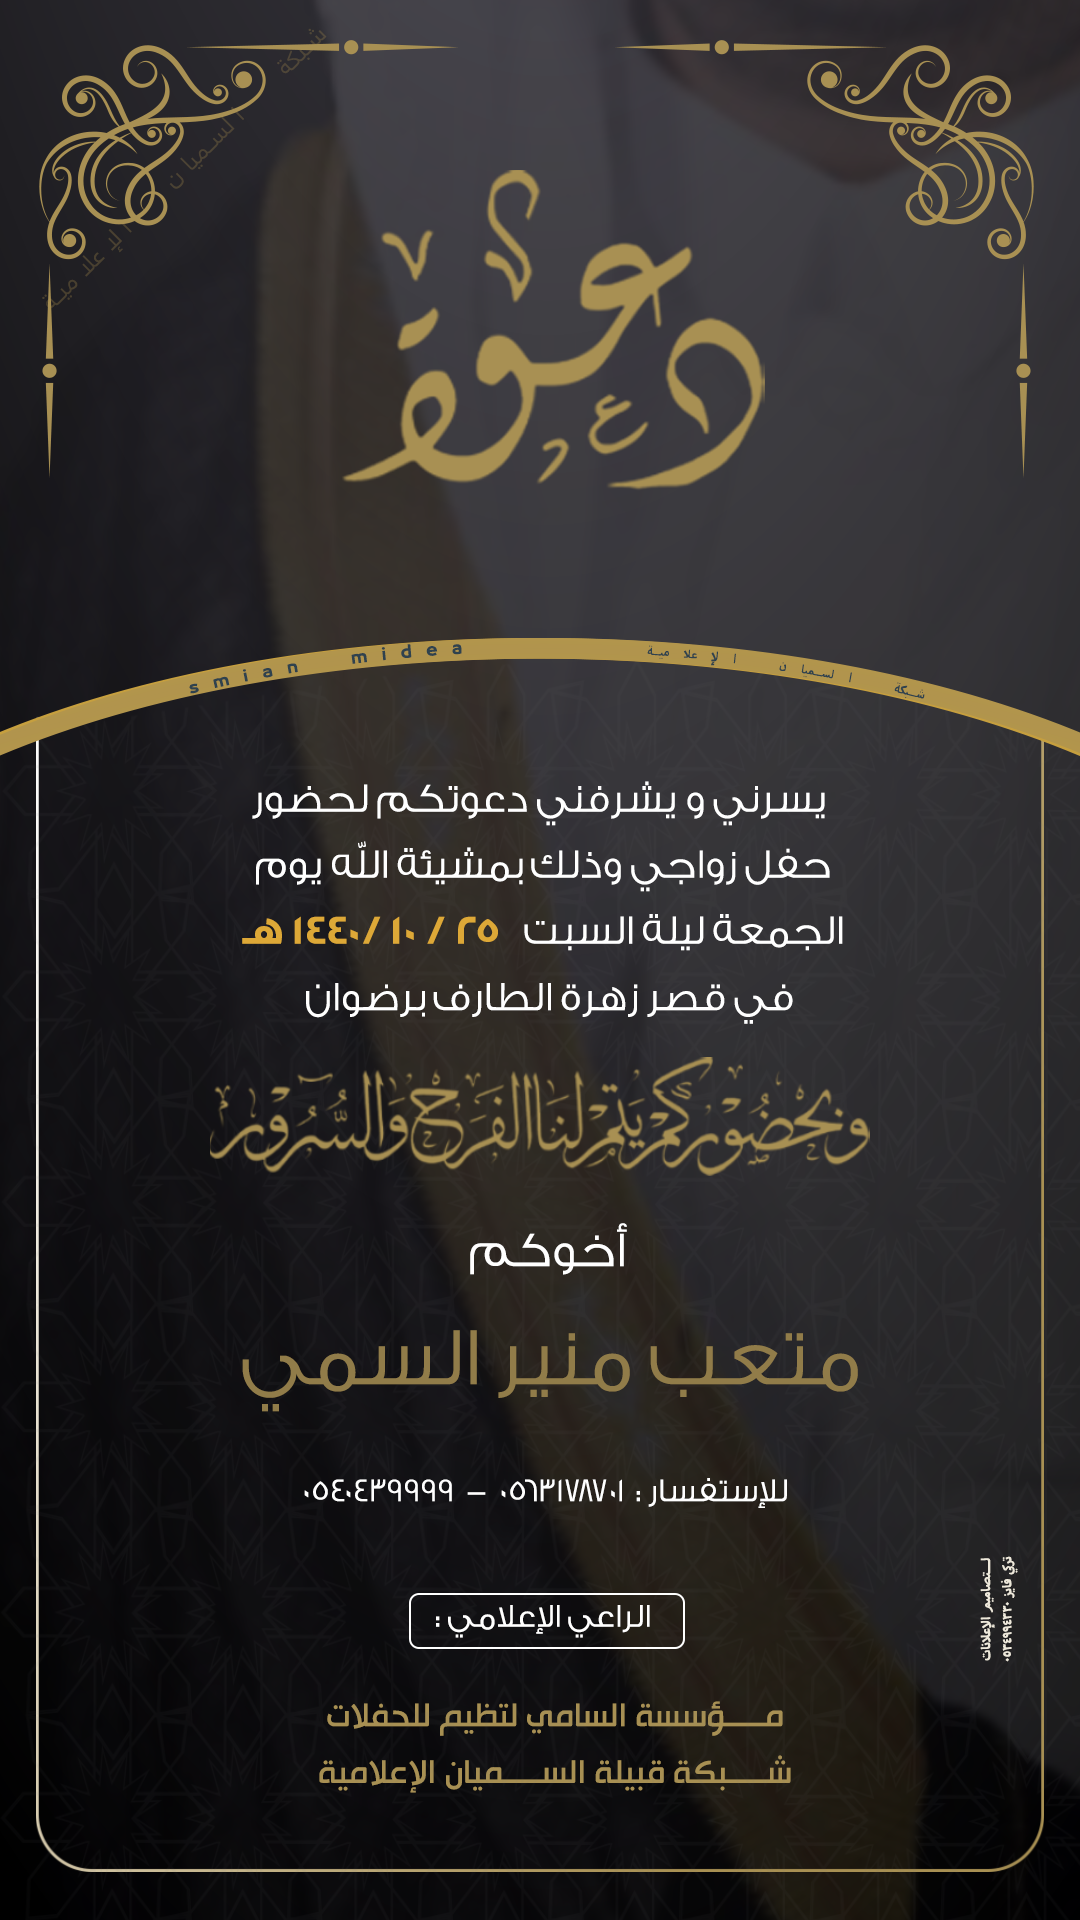 دعوة زواج Wedding Logo Design Digital Wedding Invitations Design Floral Cards Design